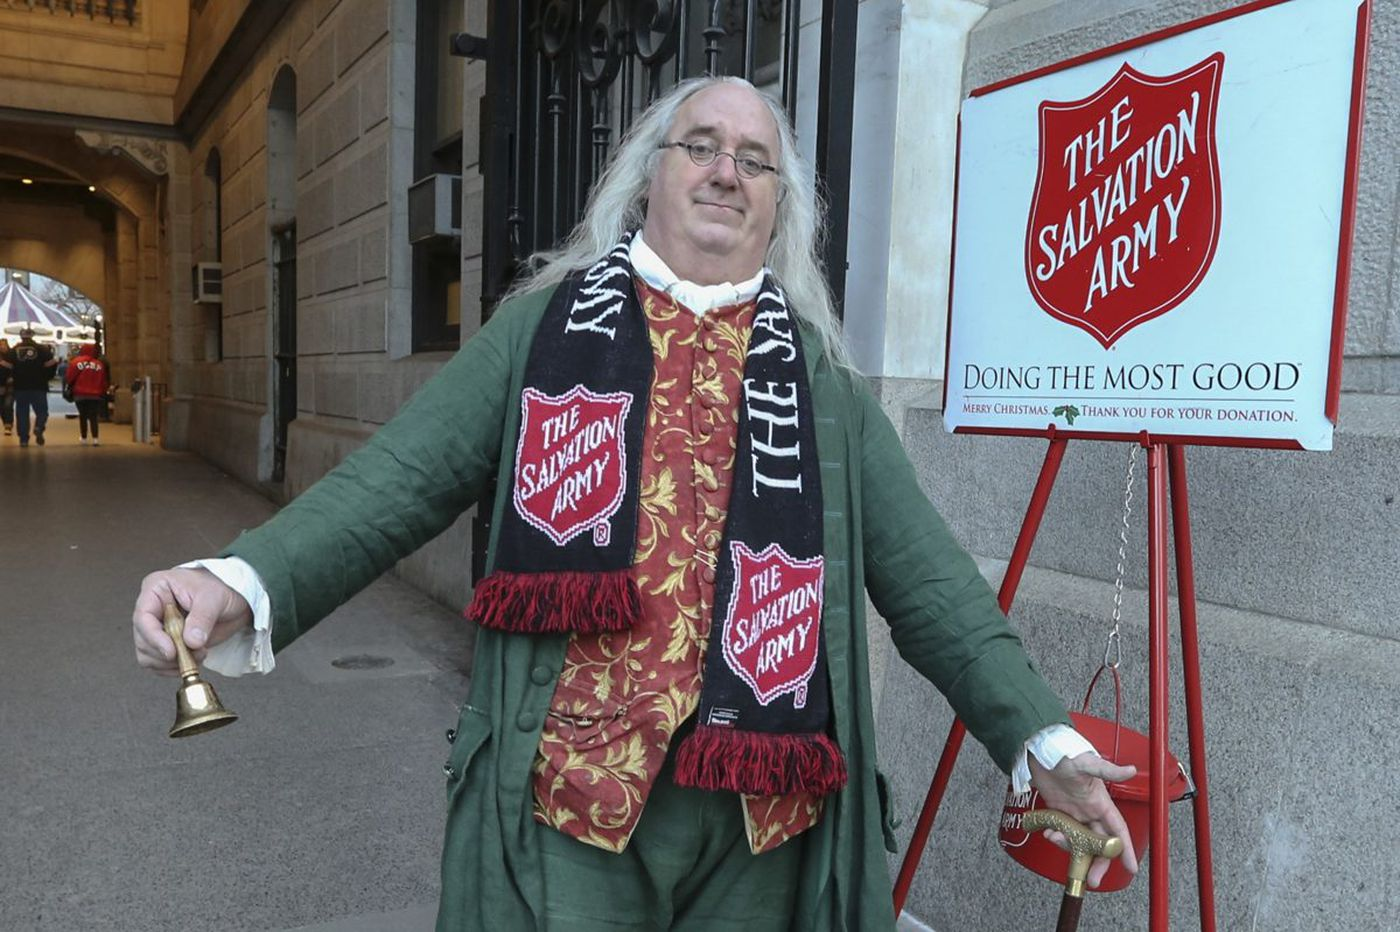 Ben Franklin, Founding Father and Salvation Army bell ringer | We the People